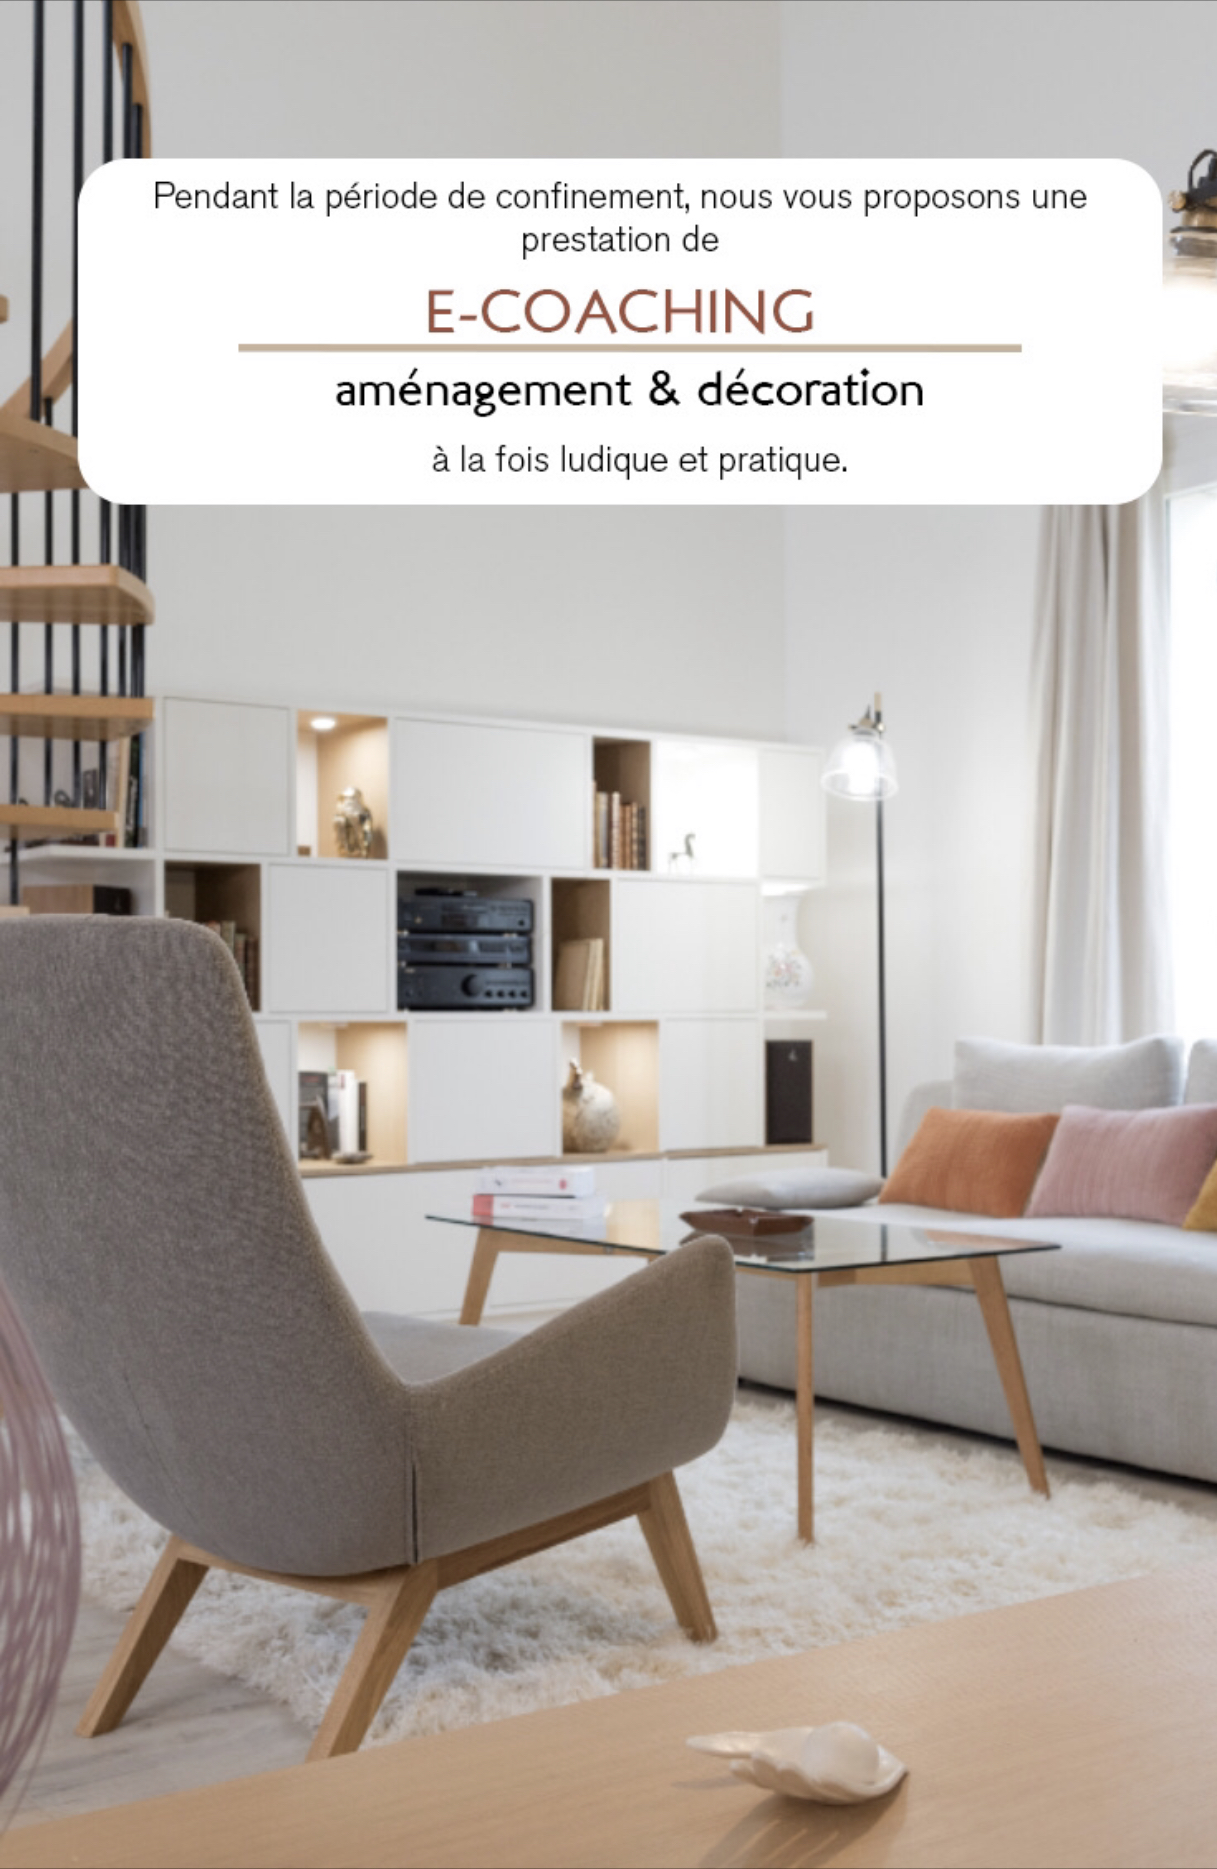 e-coaching-agence-atmospheres-design-conseil-deco-idee-deco-amenagement-renovation-interioir-design-designer-patricia-coignard-audrey-pacaud-3